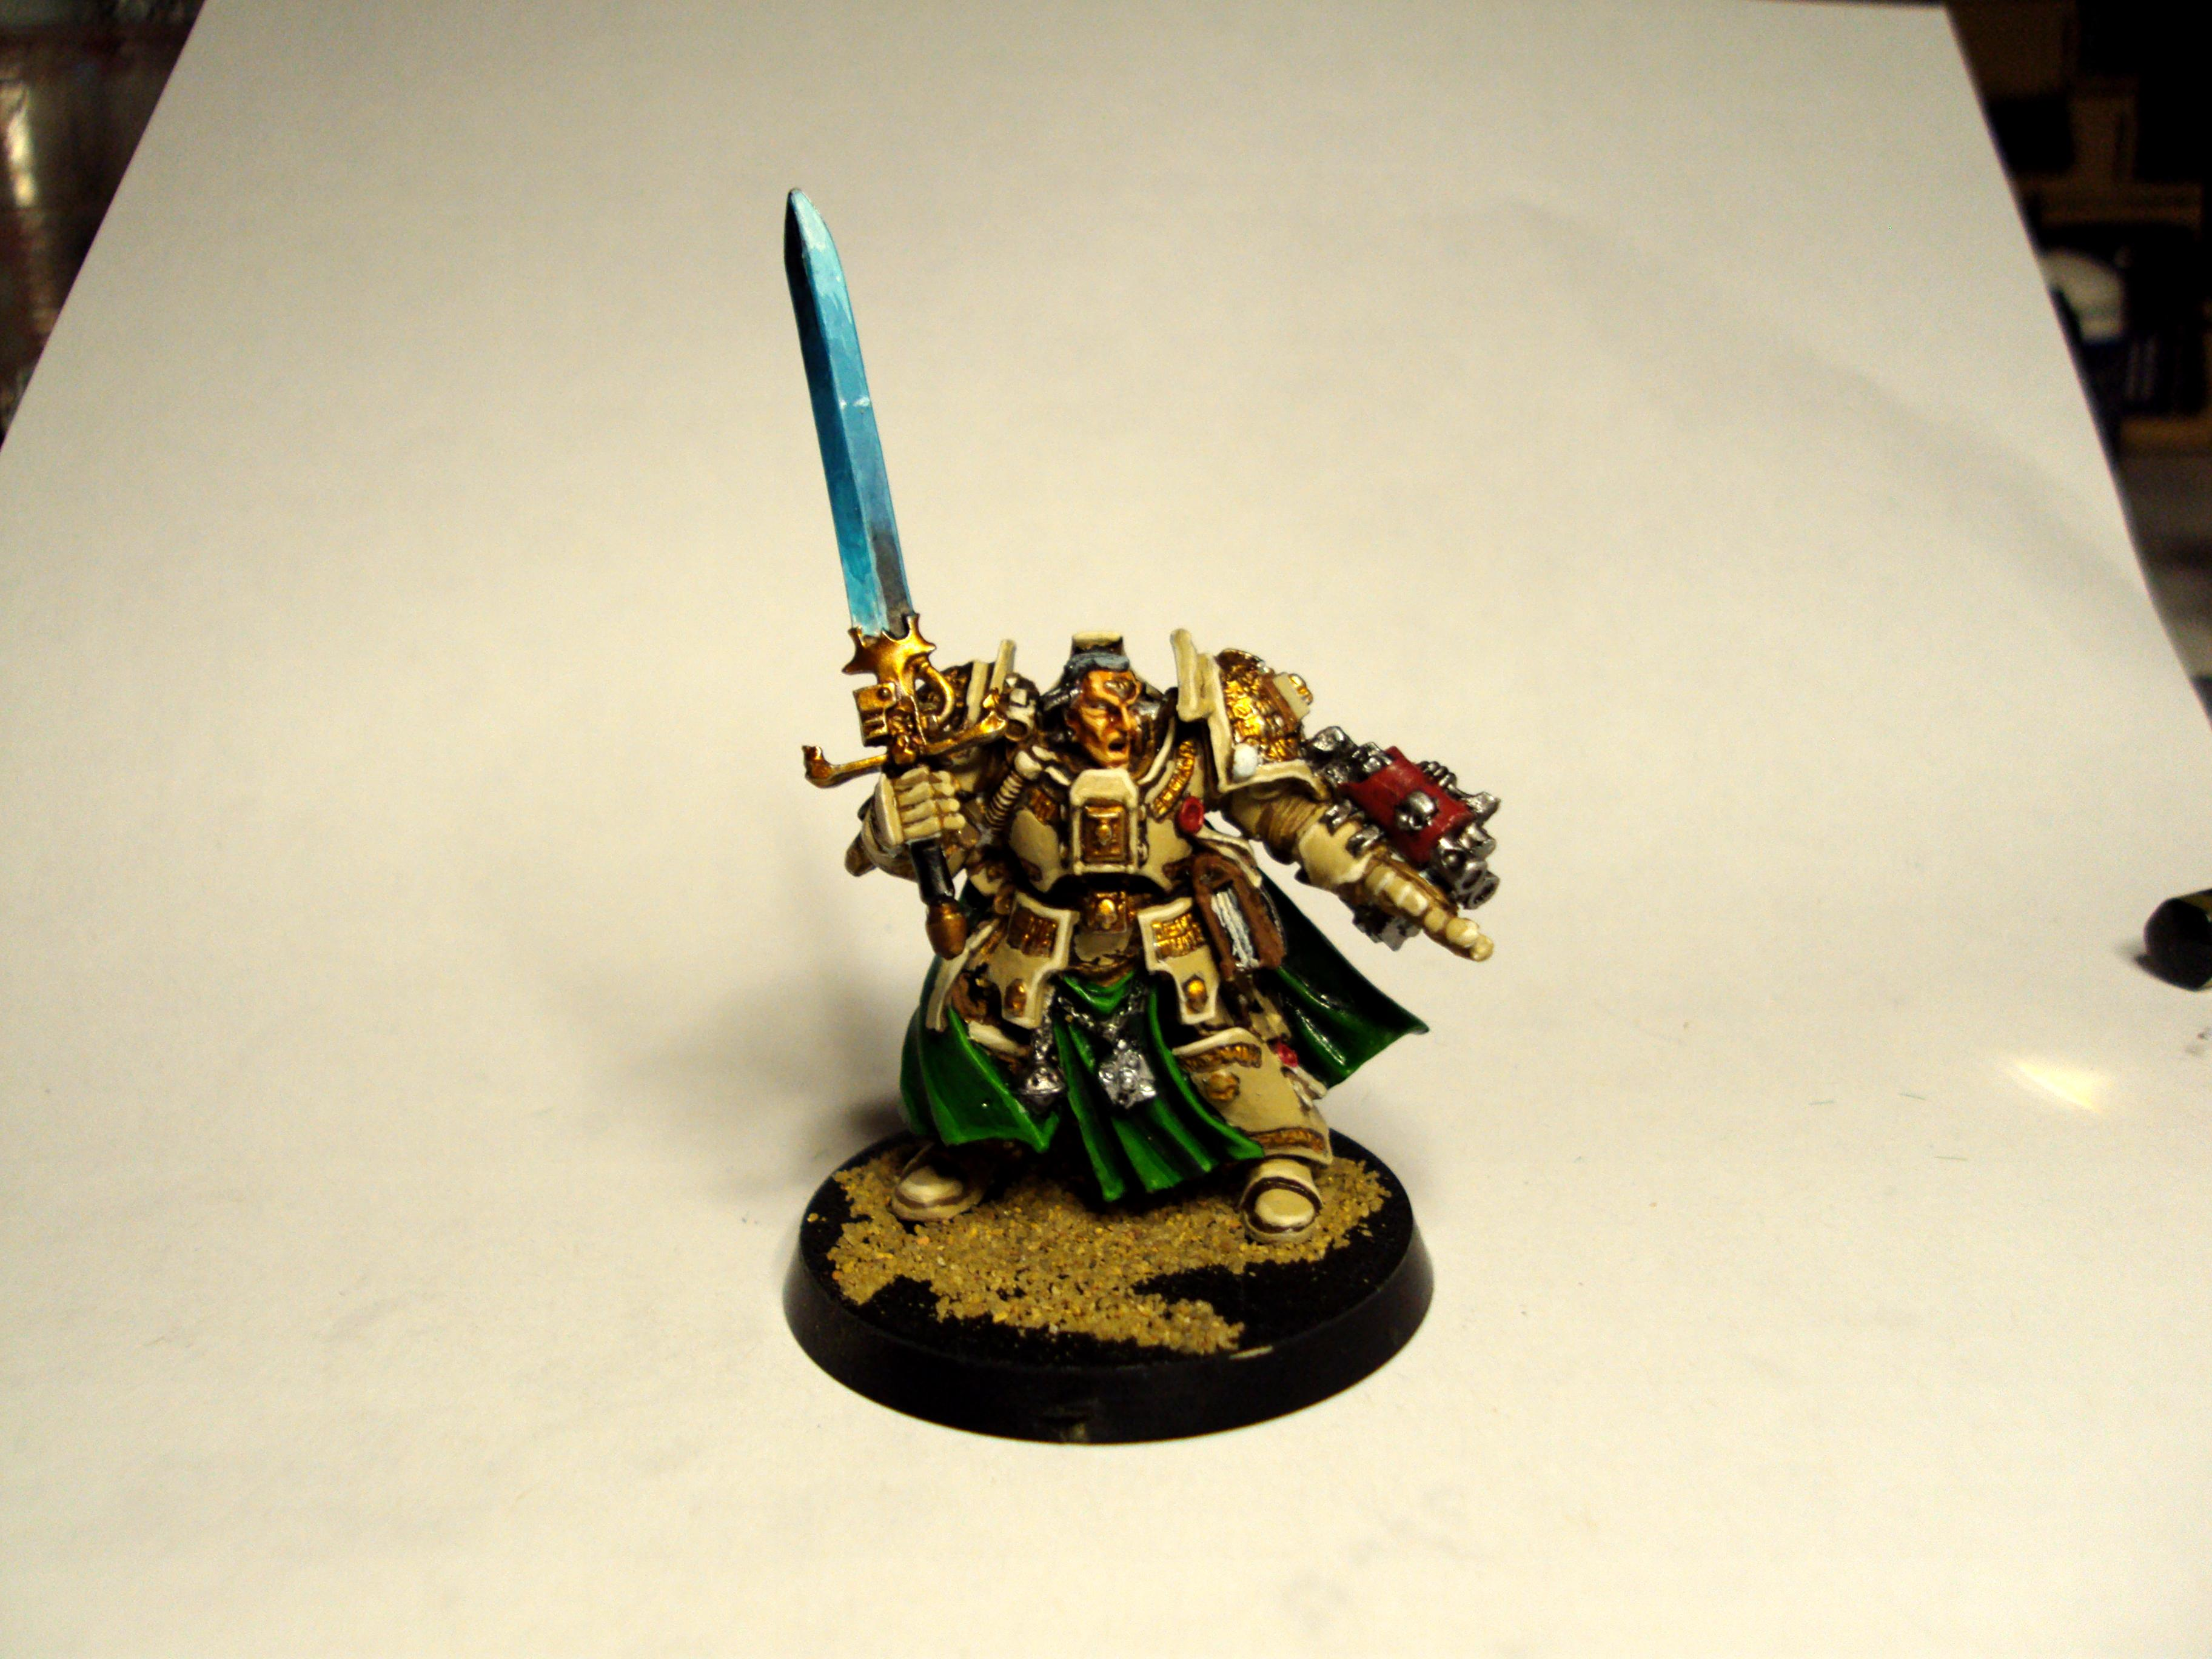 Master Belial of the Deathwing